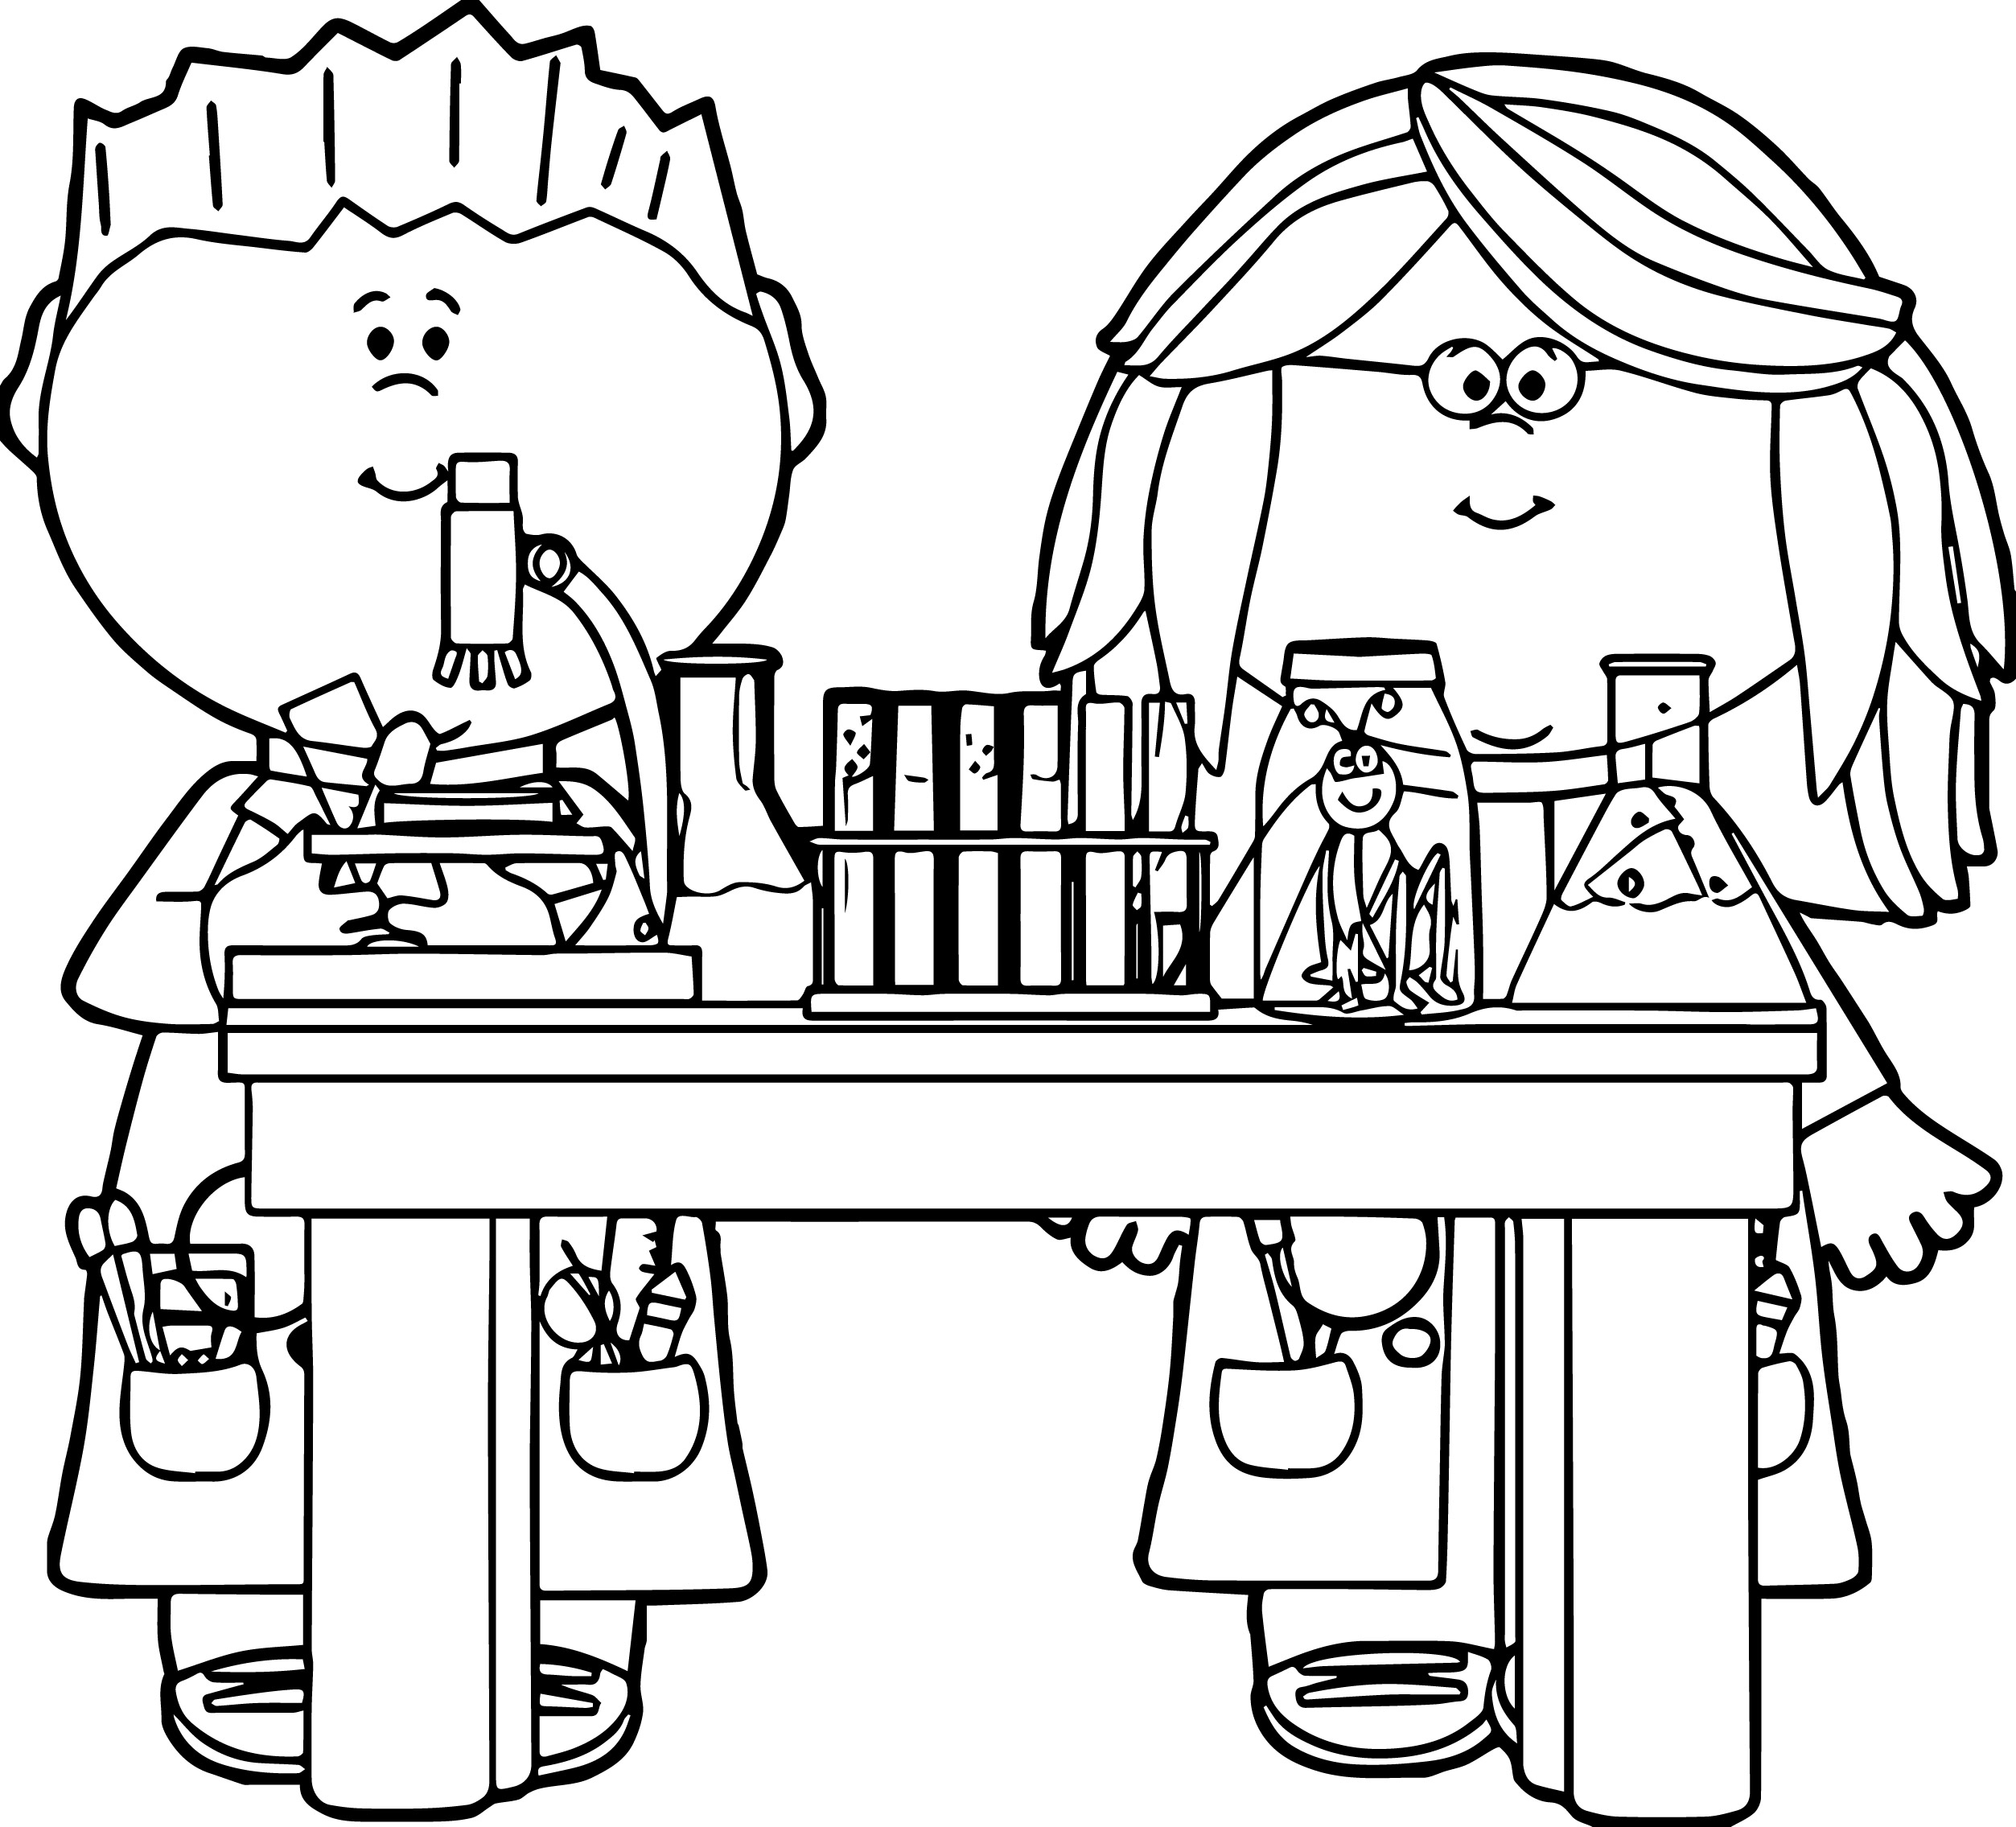 2506x2271 Awesome Researcher Coloring Page Gallery Printable Coloring Sheet